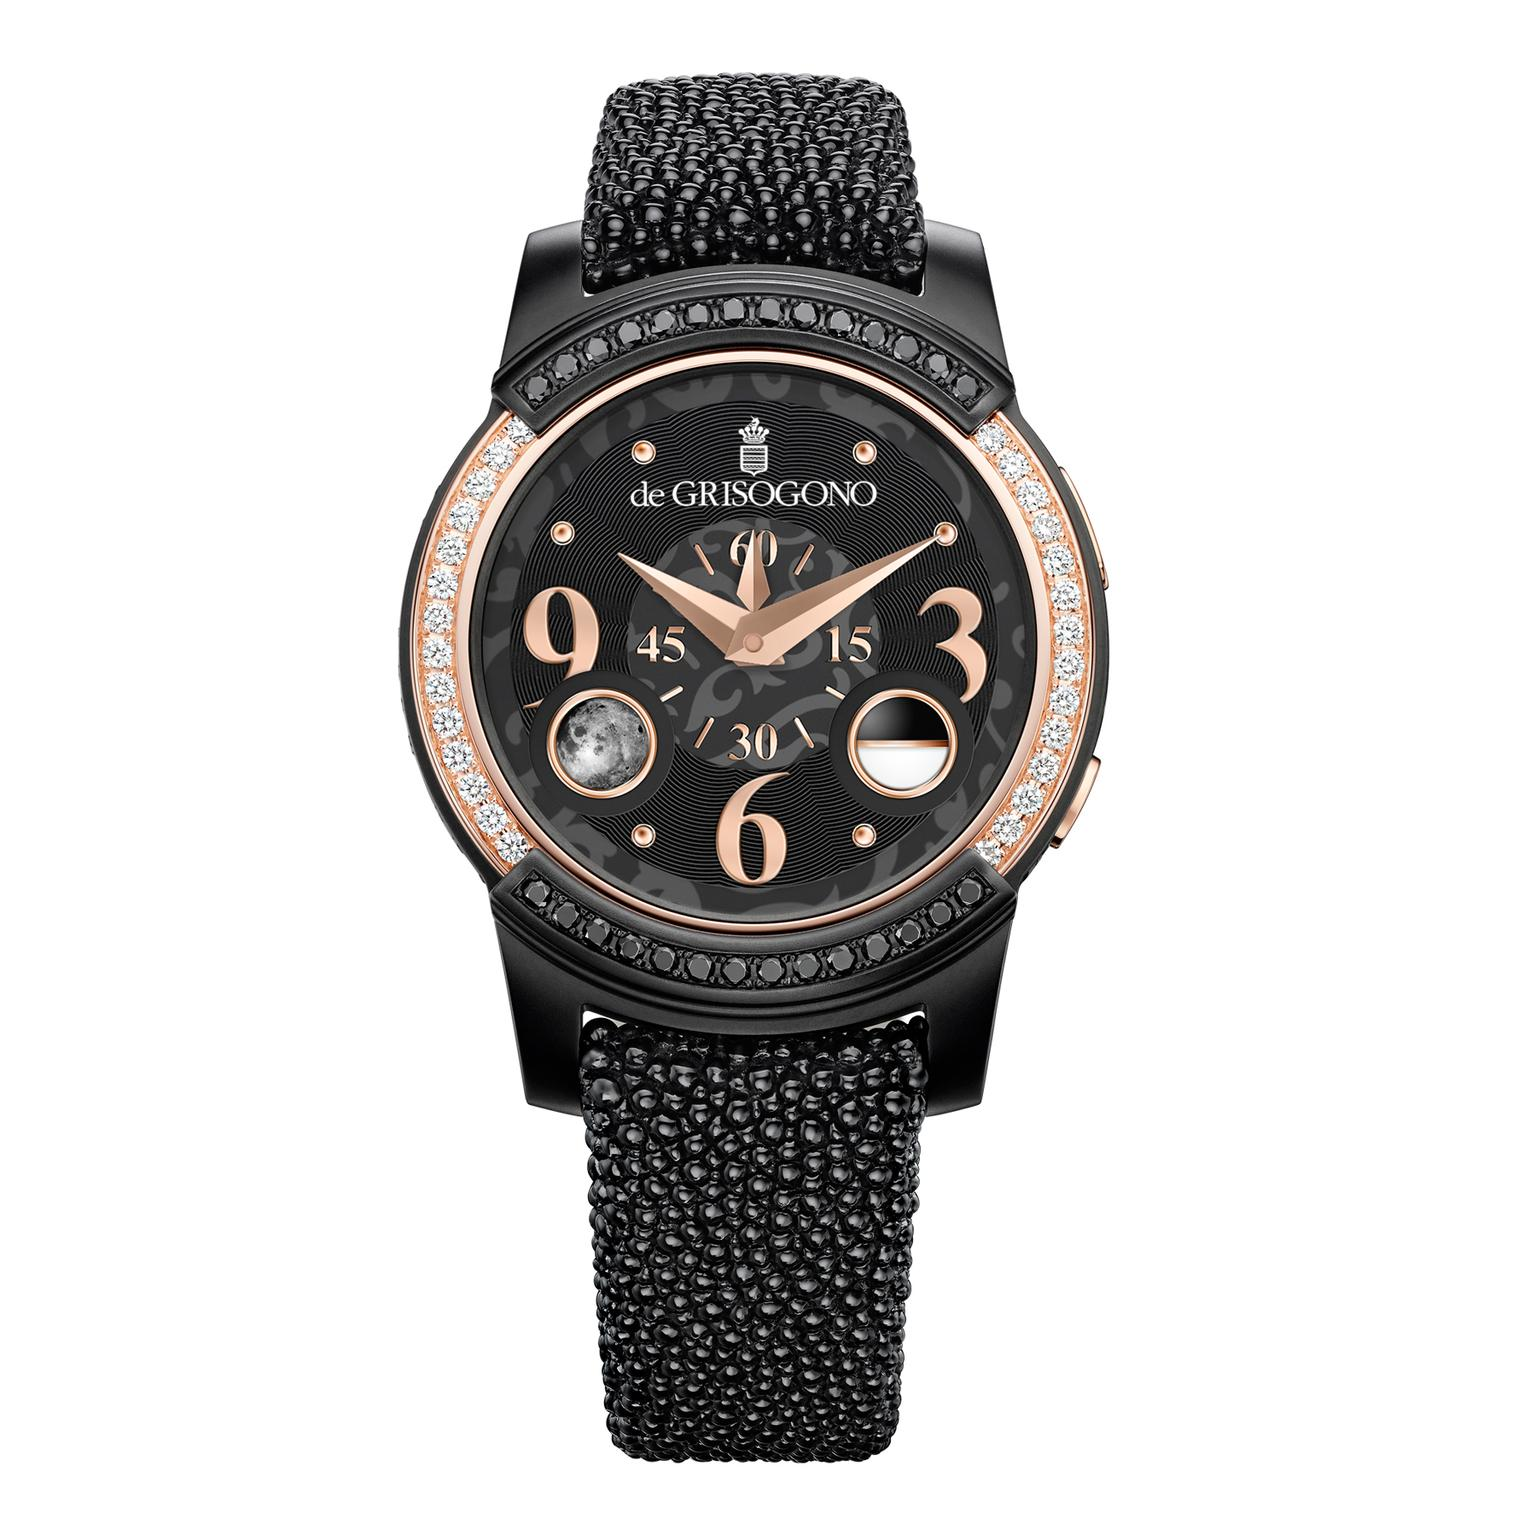 de GRISOGONO Samsung Gear S2-watch